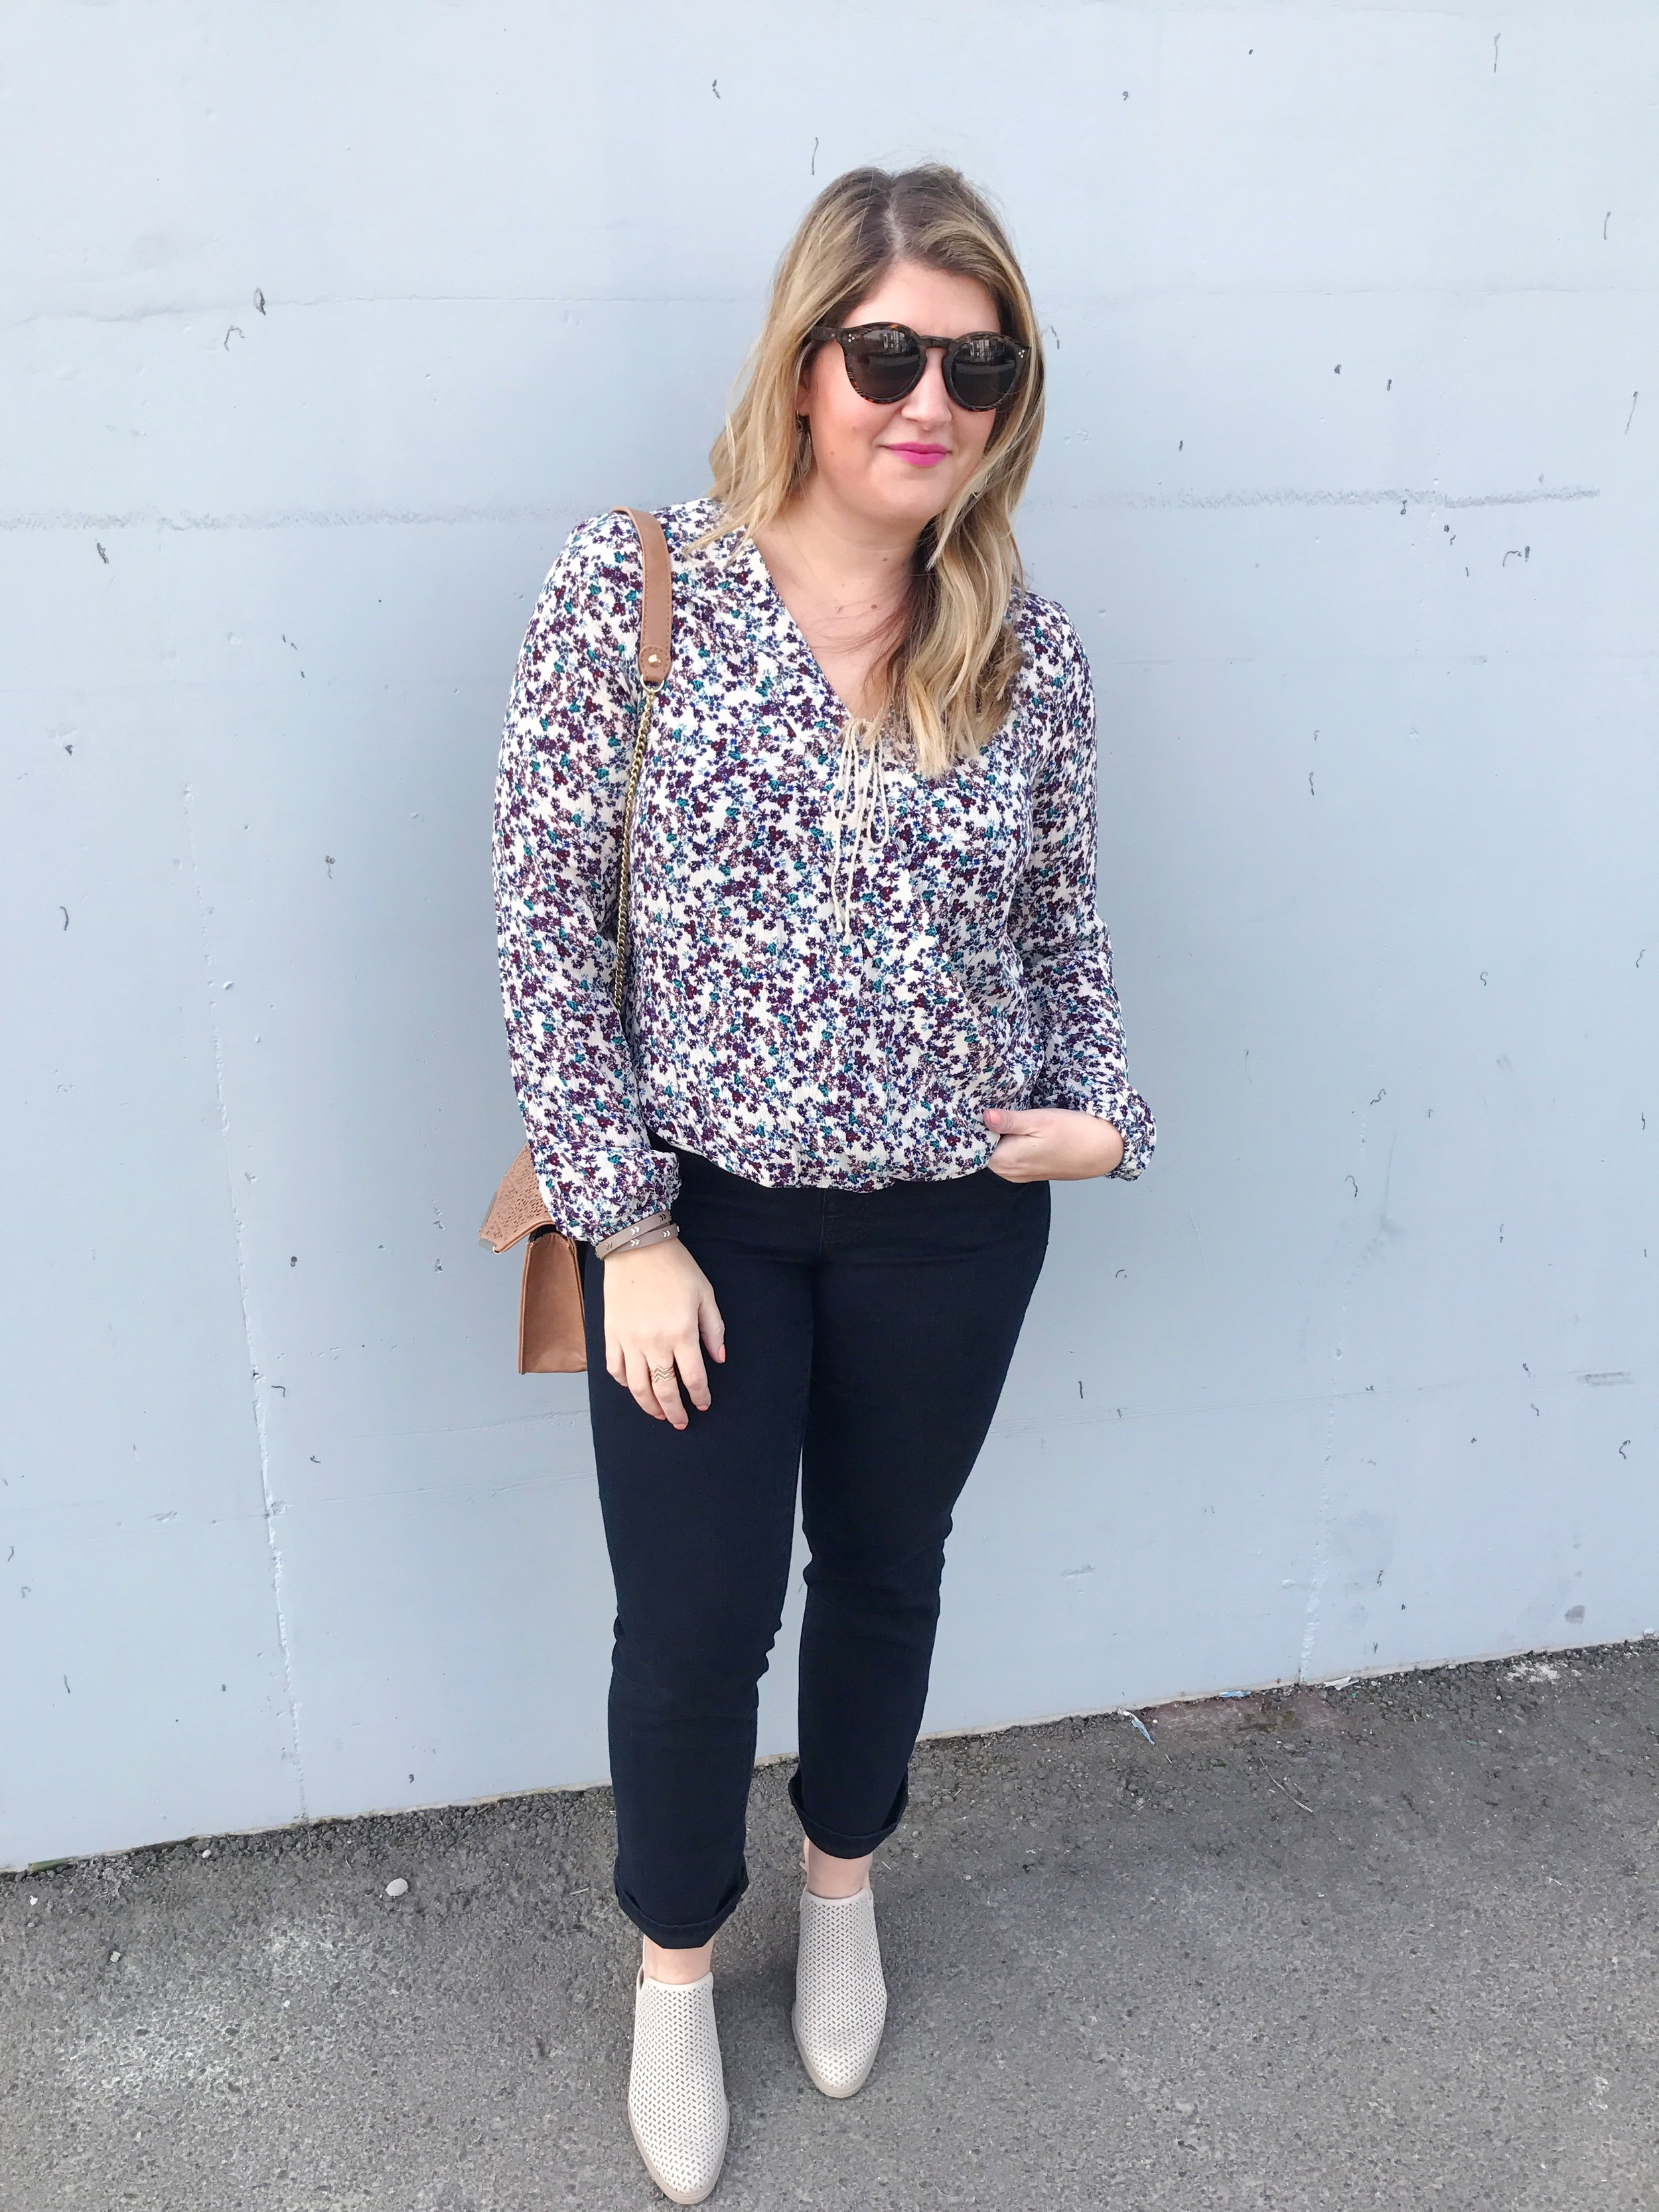 wearing my new jag jeans. paired them with a floral blouse + slip on mules